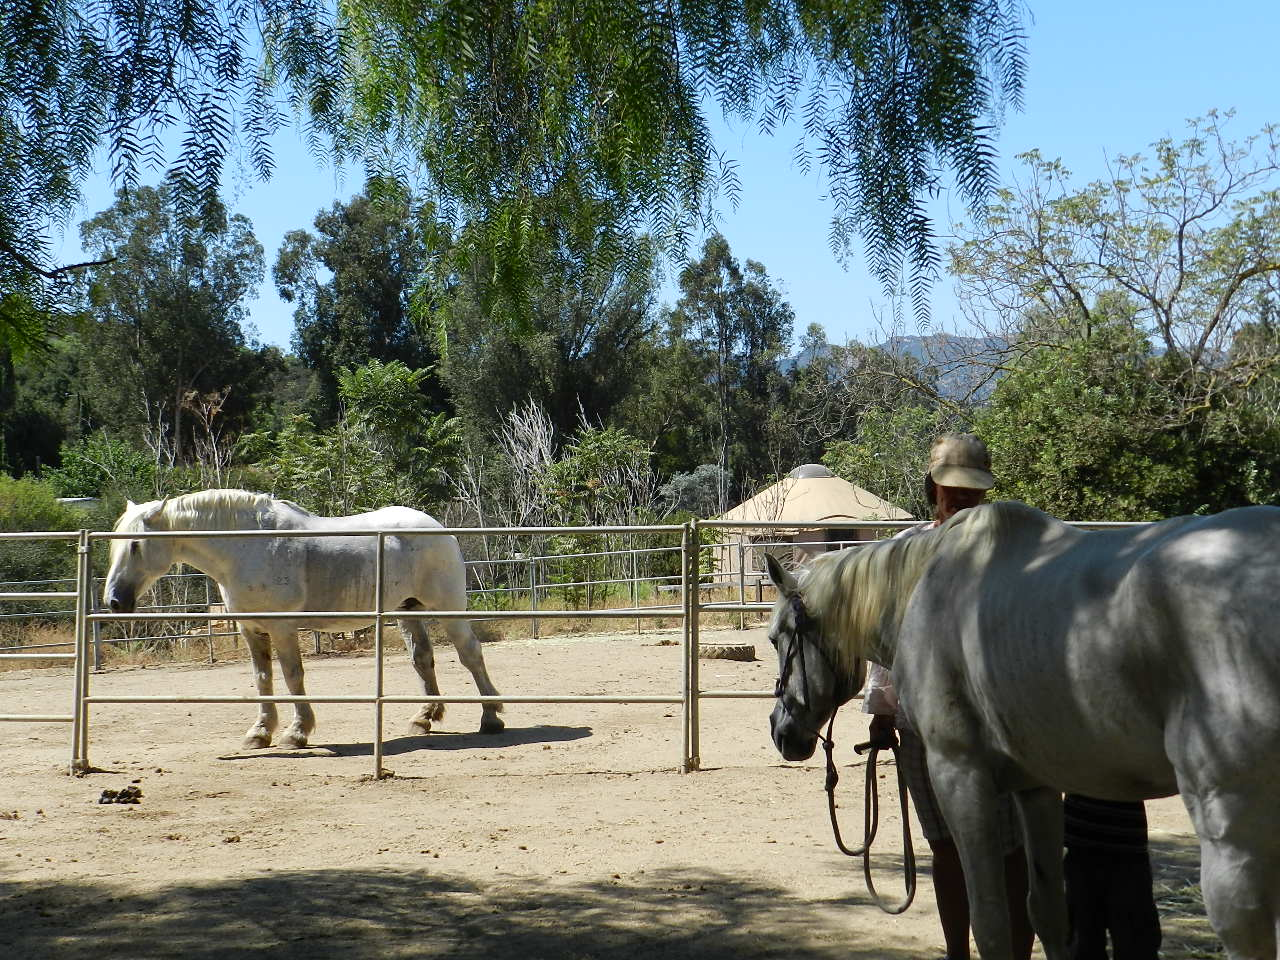 Horses waiting for their next riders at a Malibu horse ranch